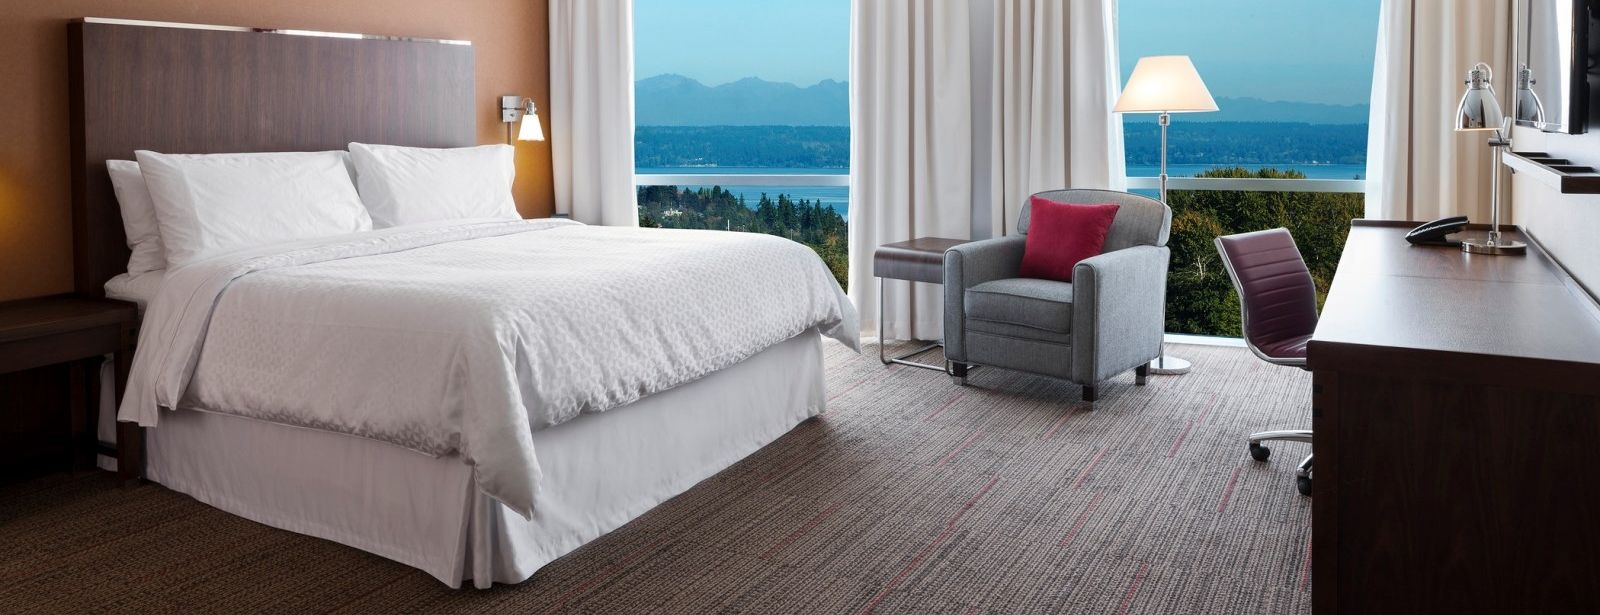 SeaTac Accommodations - Accessible Guest Room